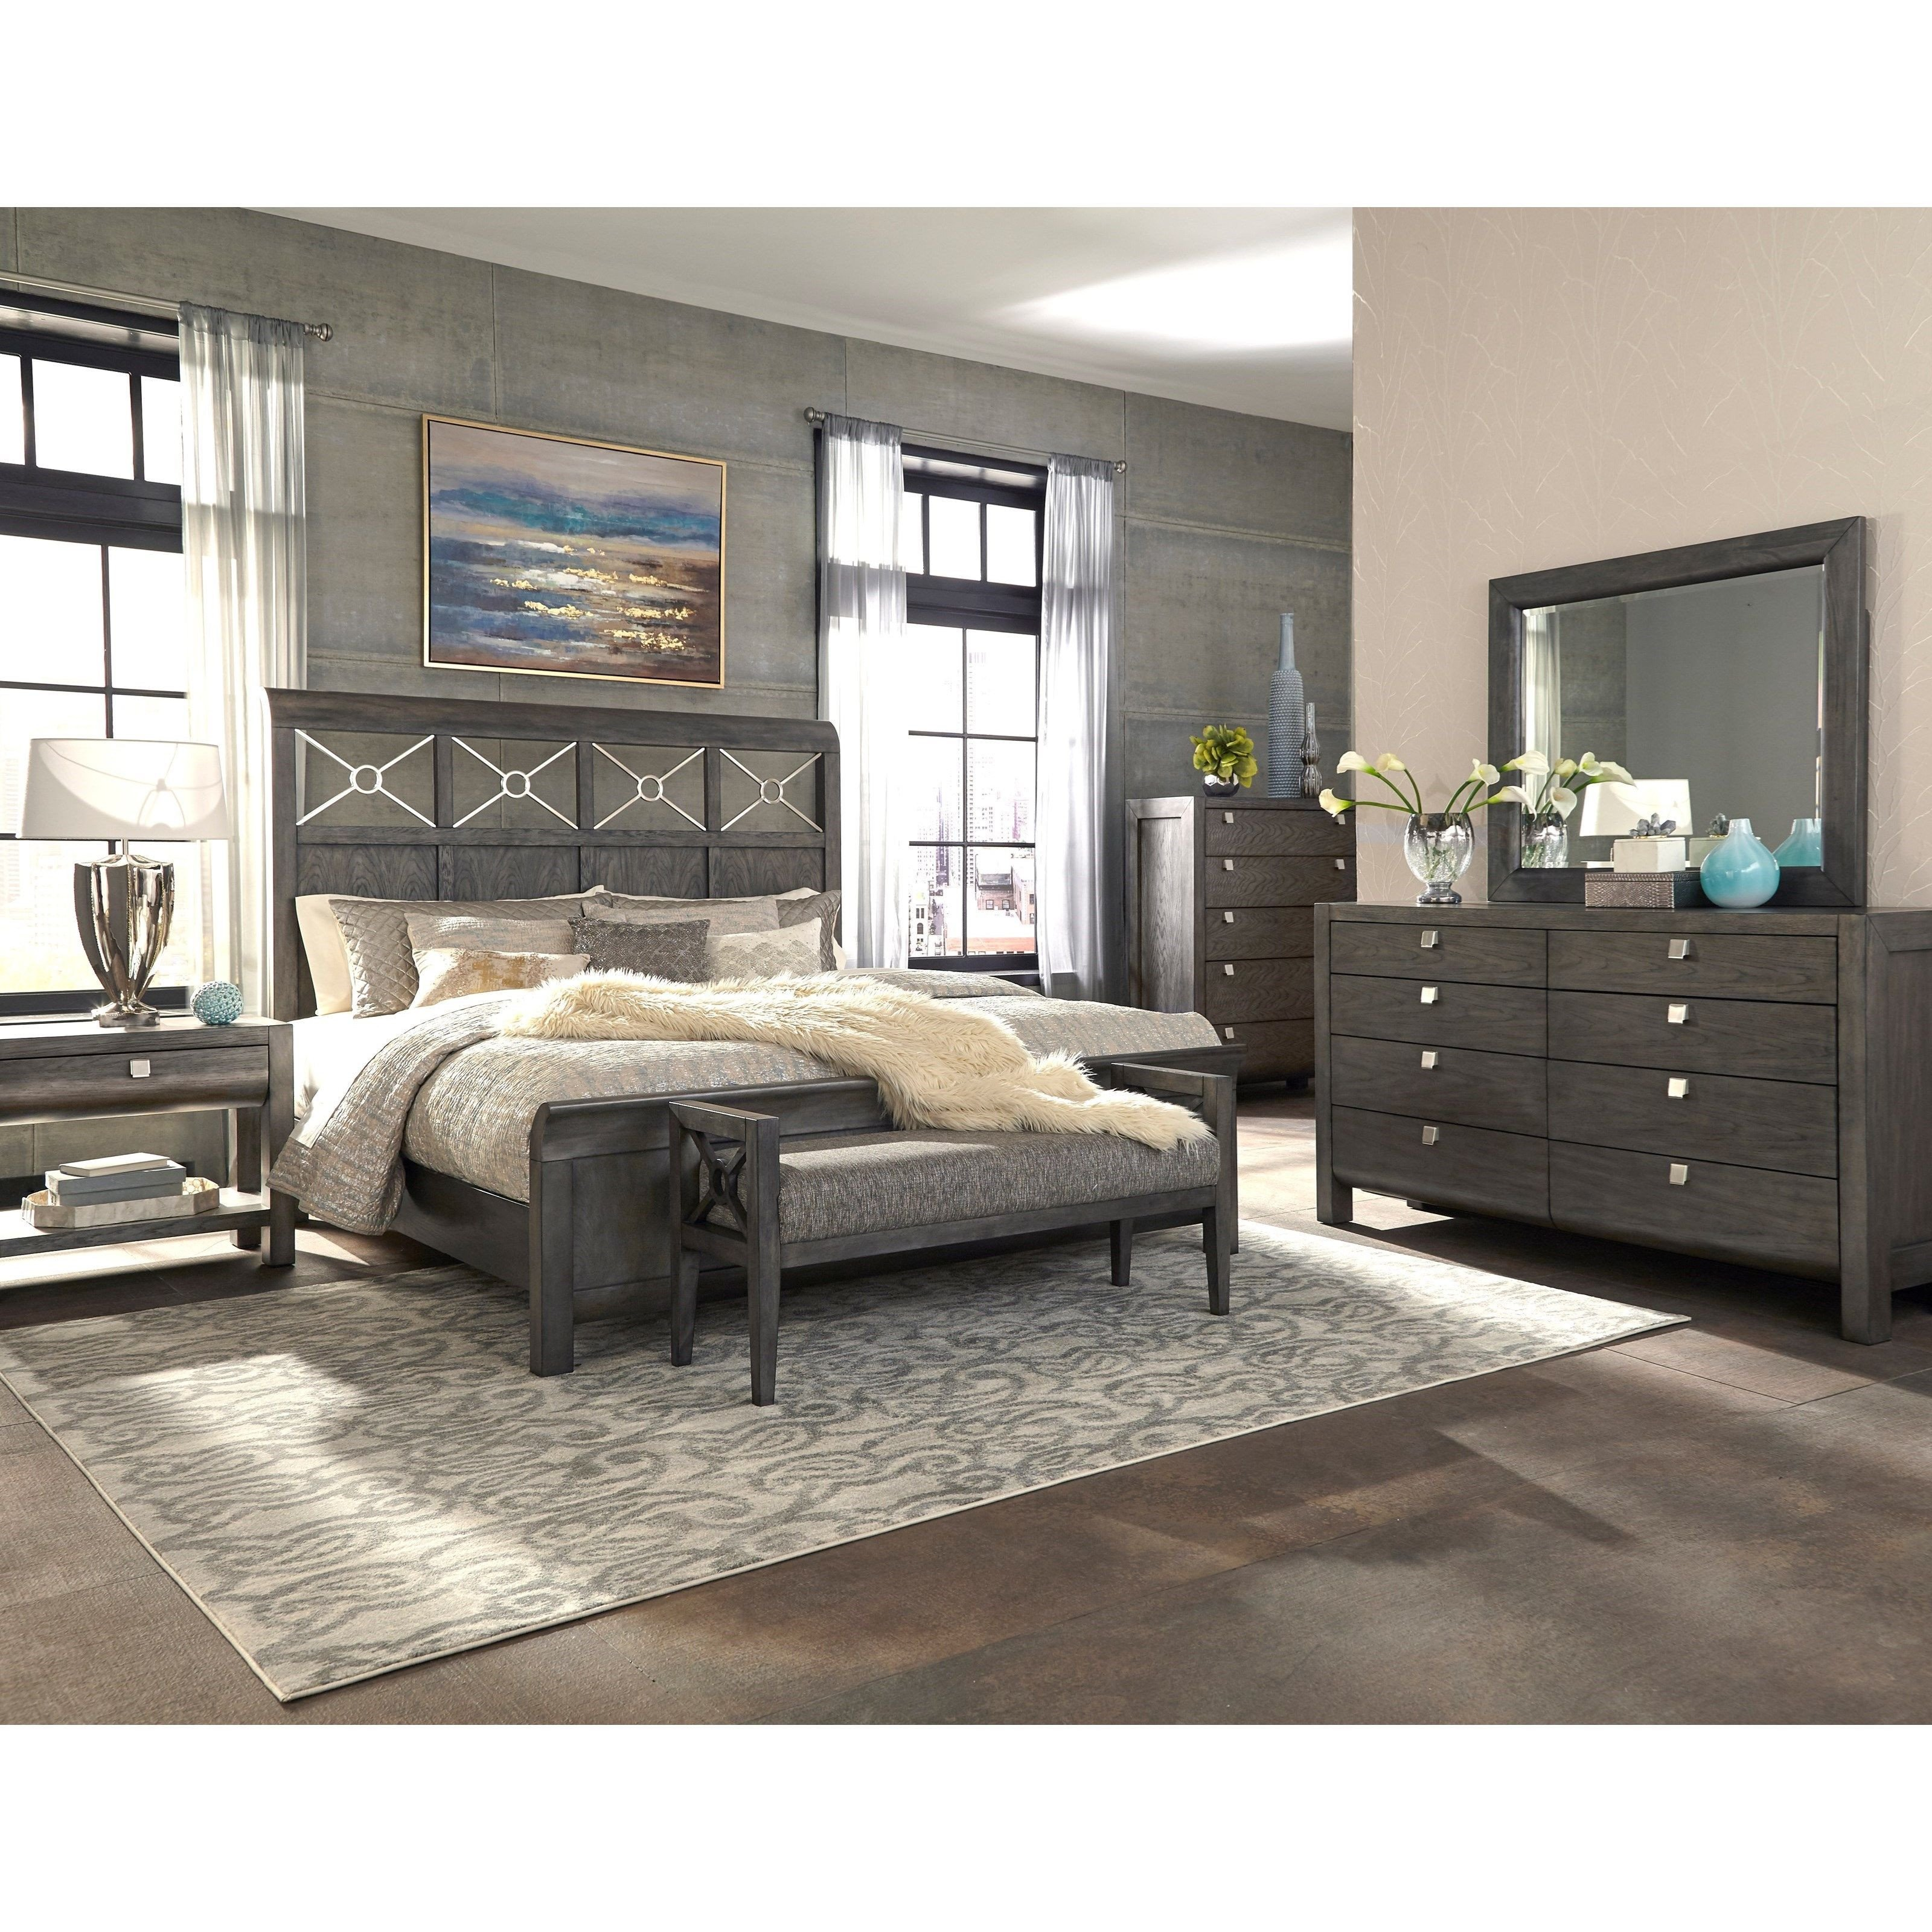 Home Furniture Bedroom Set Unique Music City Queen Bed Plete by Trisha Yearwood Home